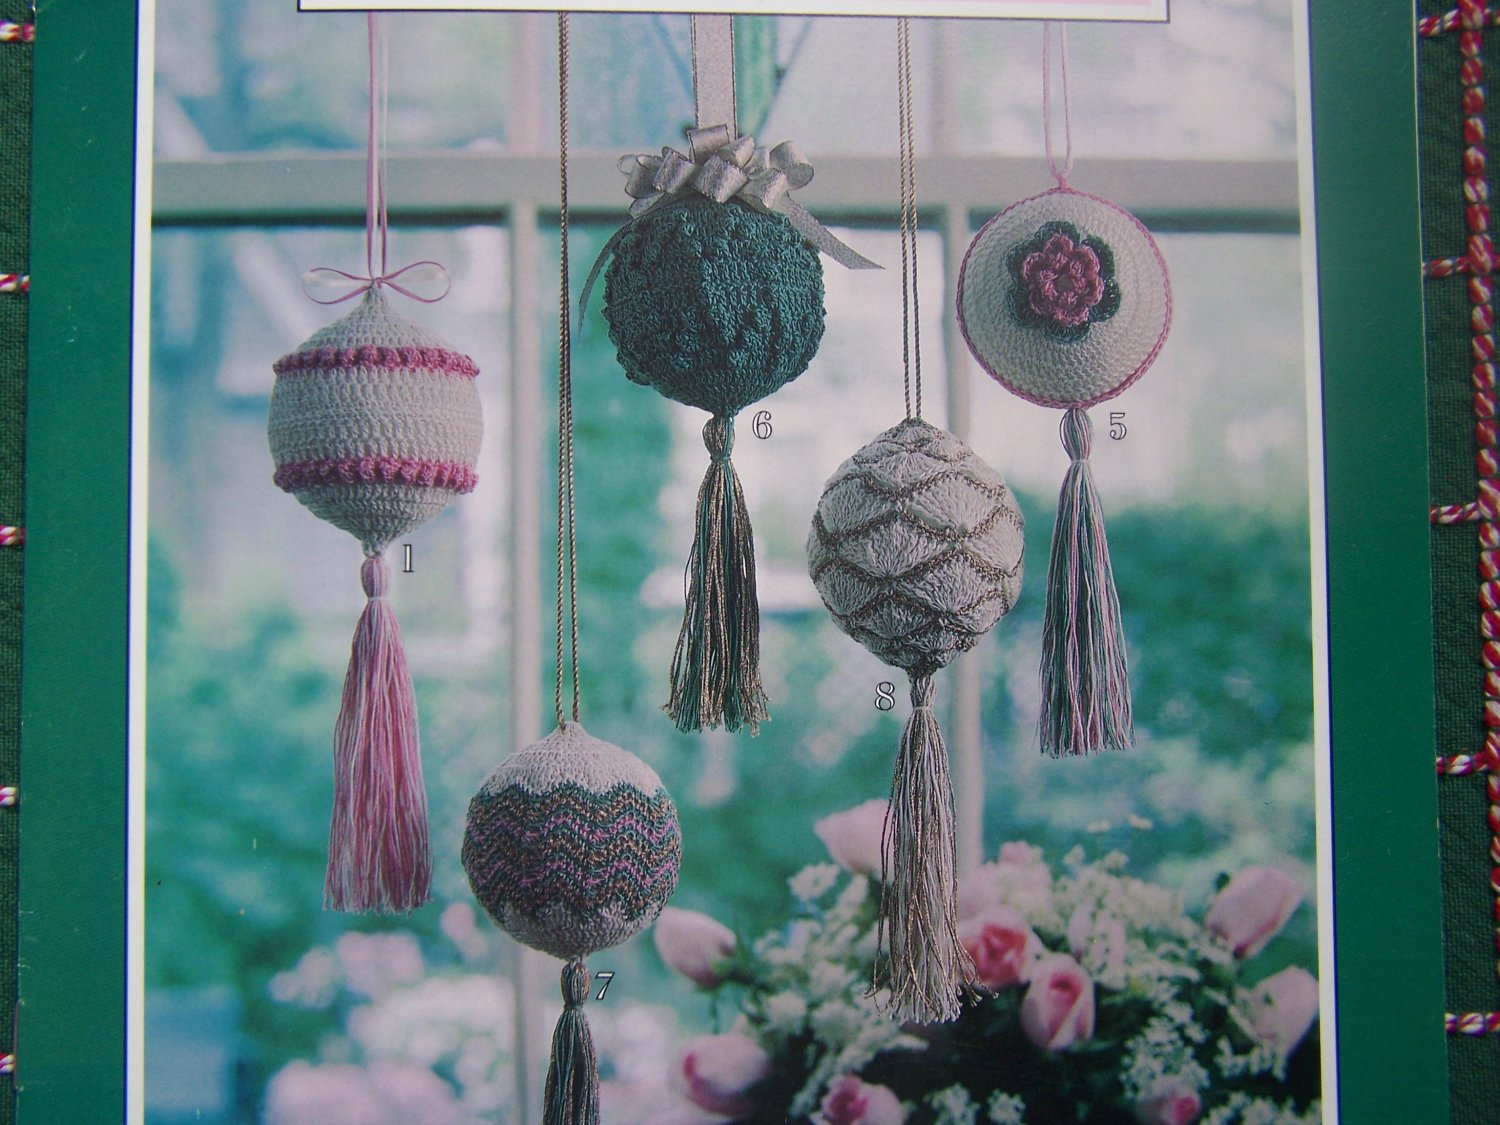 Free Crochet Patterns For Christmas Ball Covers : 8 Crocheted Victorian Christmas Ornament Patterns Ball ...